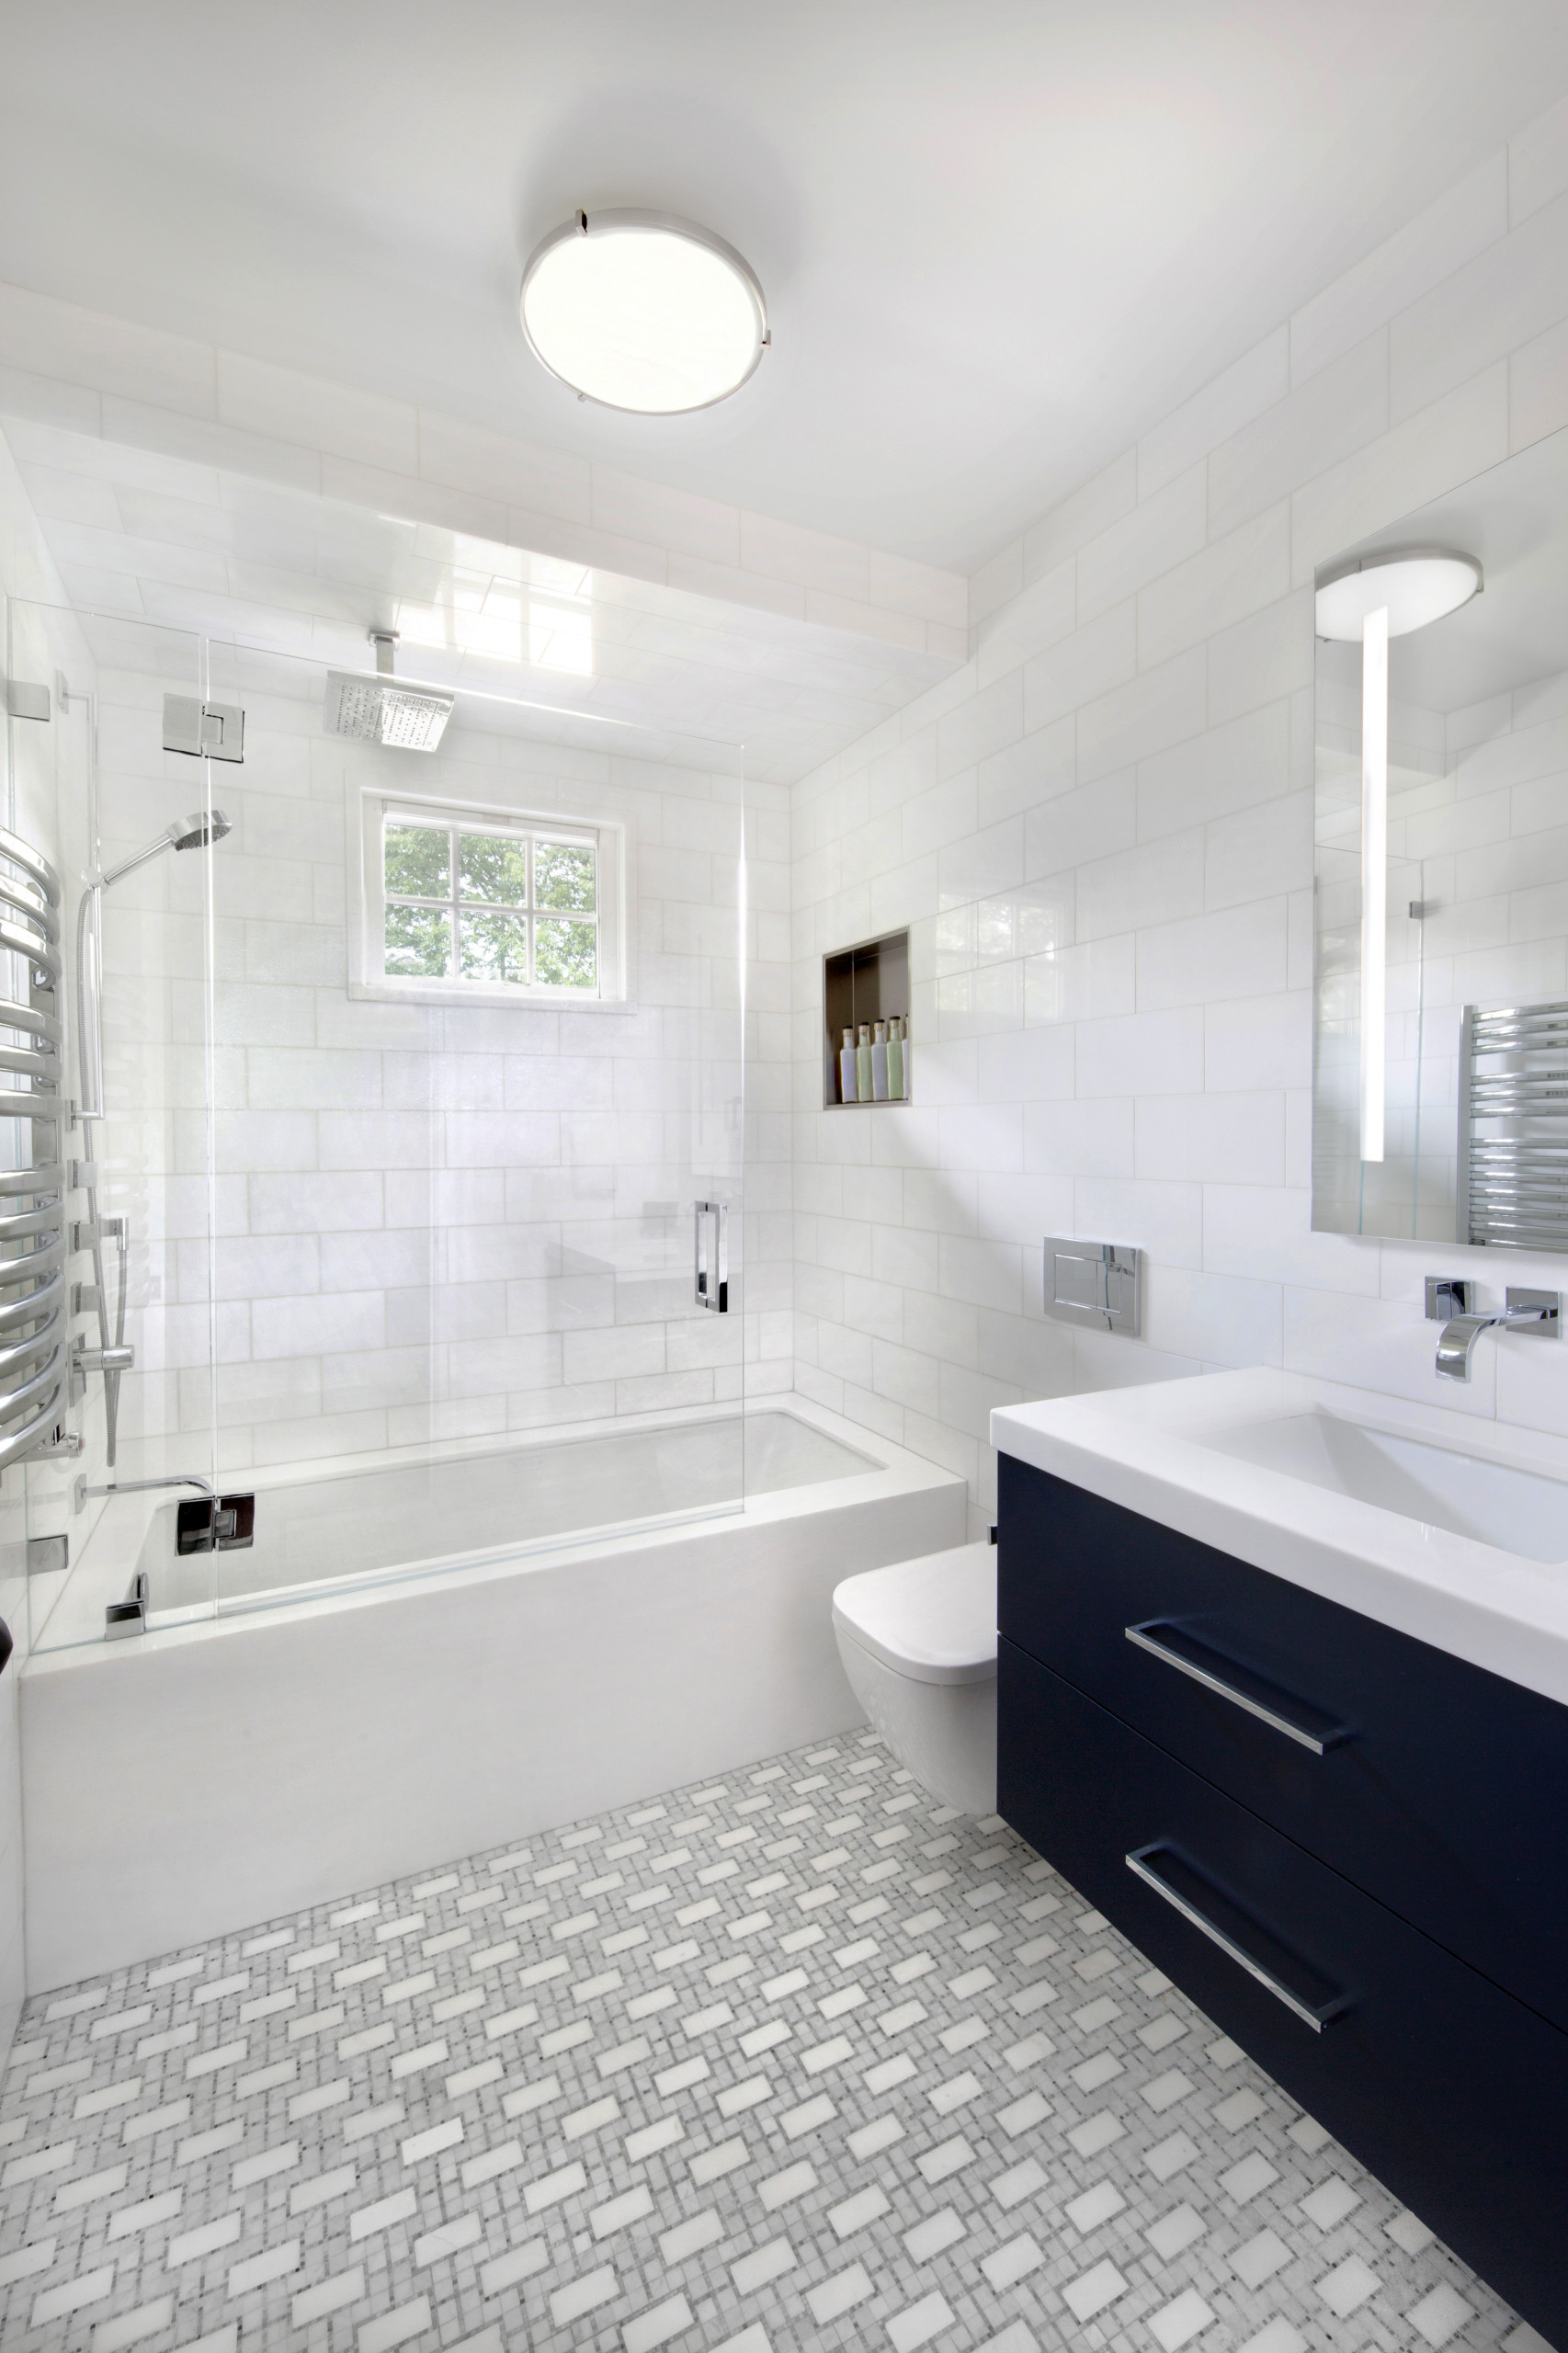 Must See Modern Bathroom Pictures & Ideas Before You Renovate